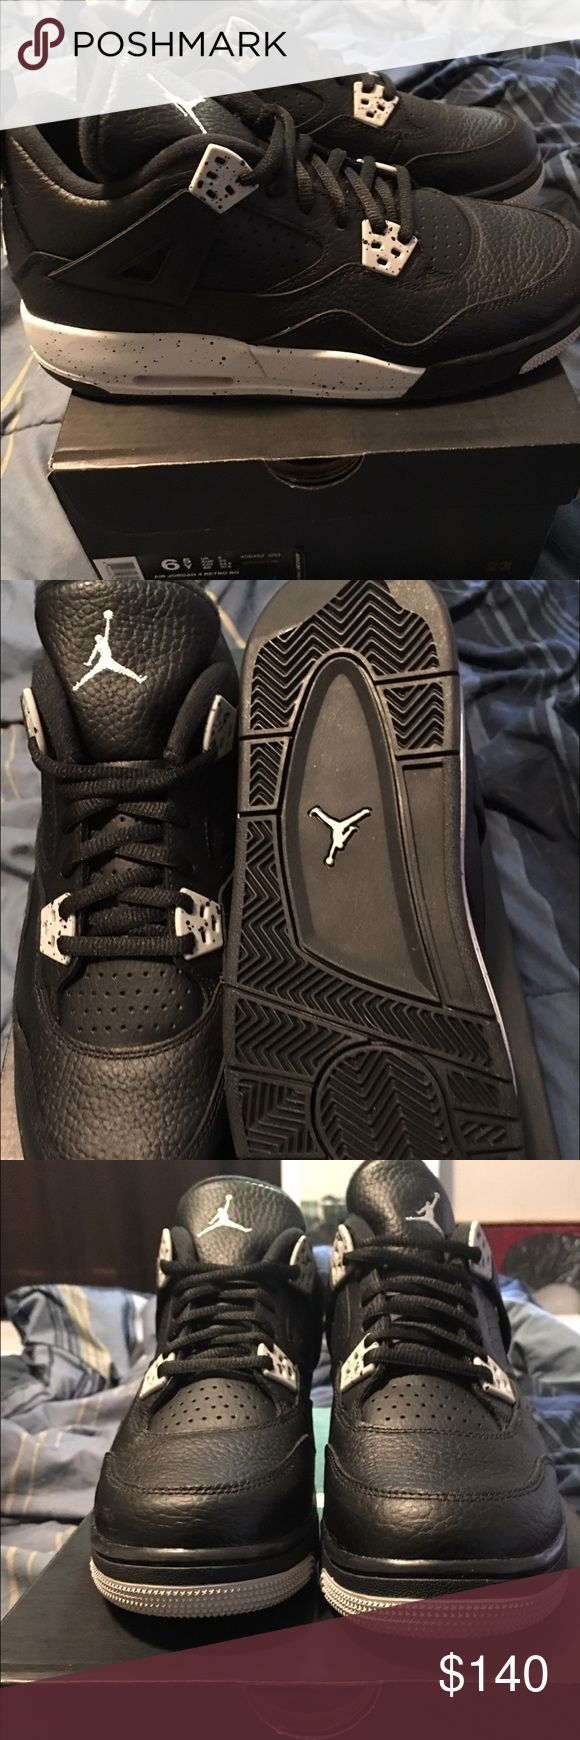 Air Jordan Oreo 4s size 6.5y Brand new dead stock never worn size 6.5y Jordan Oreo 4. Jordan Shoes Sneakers